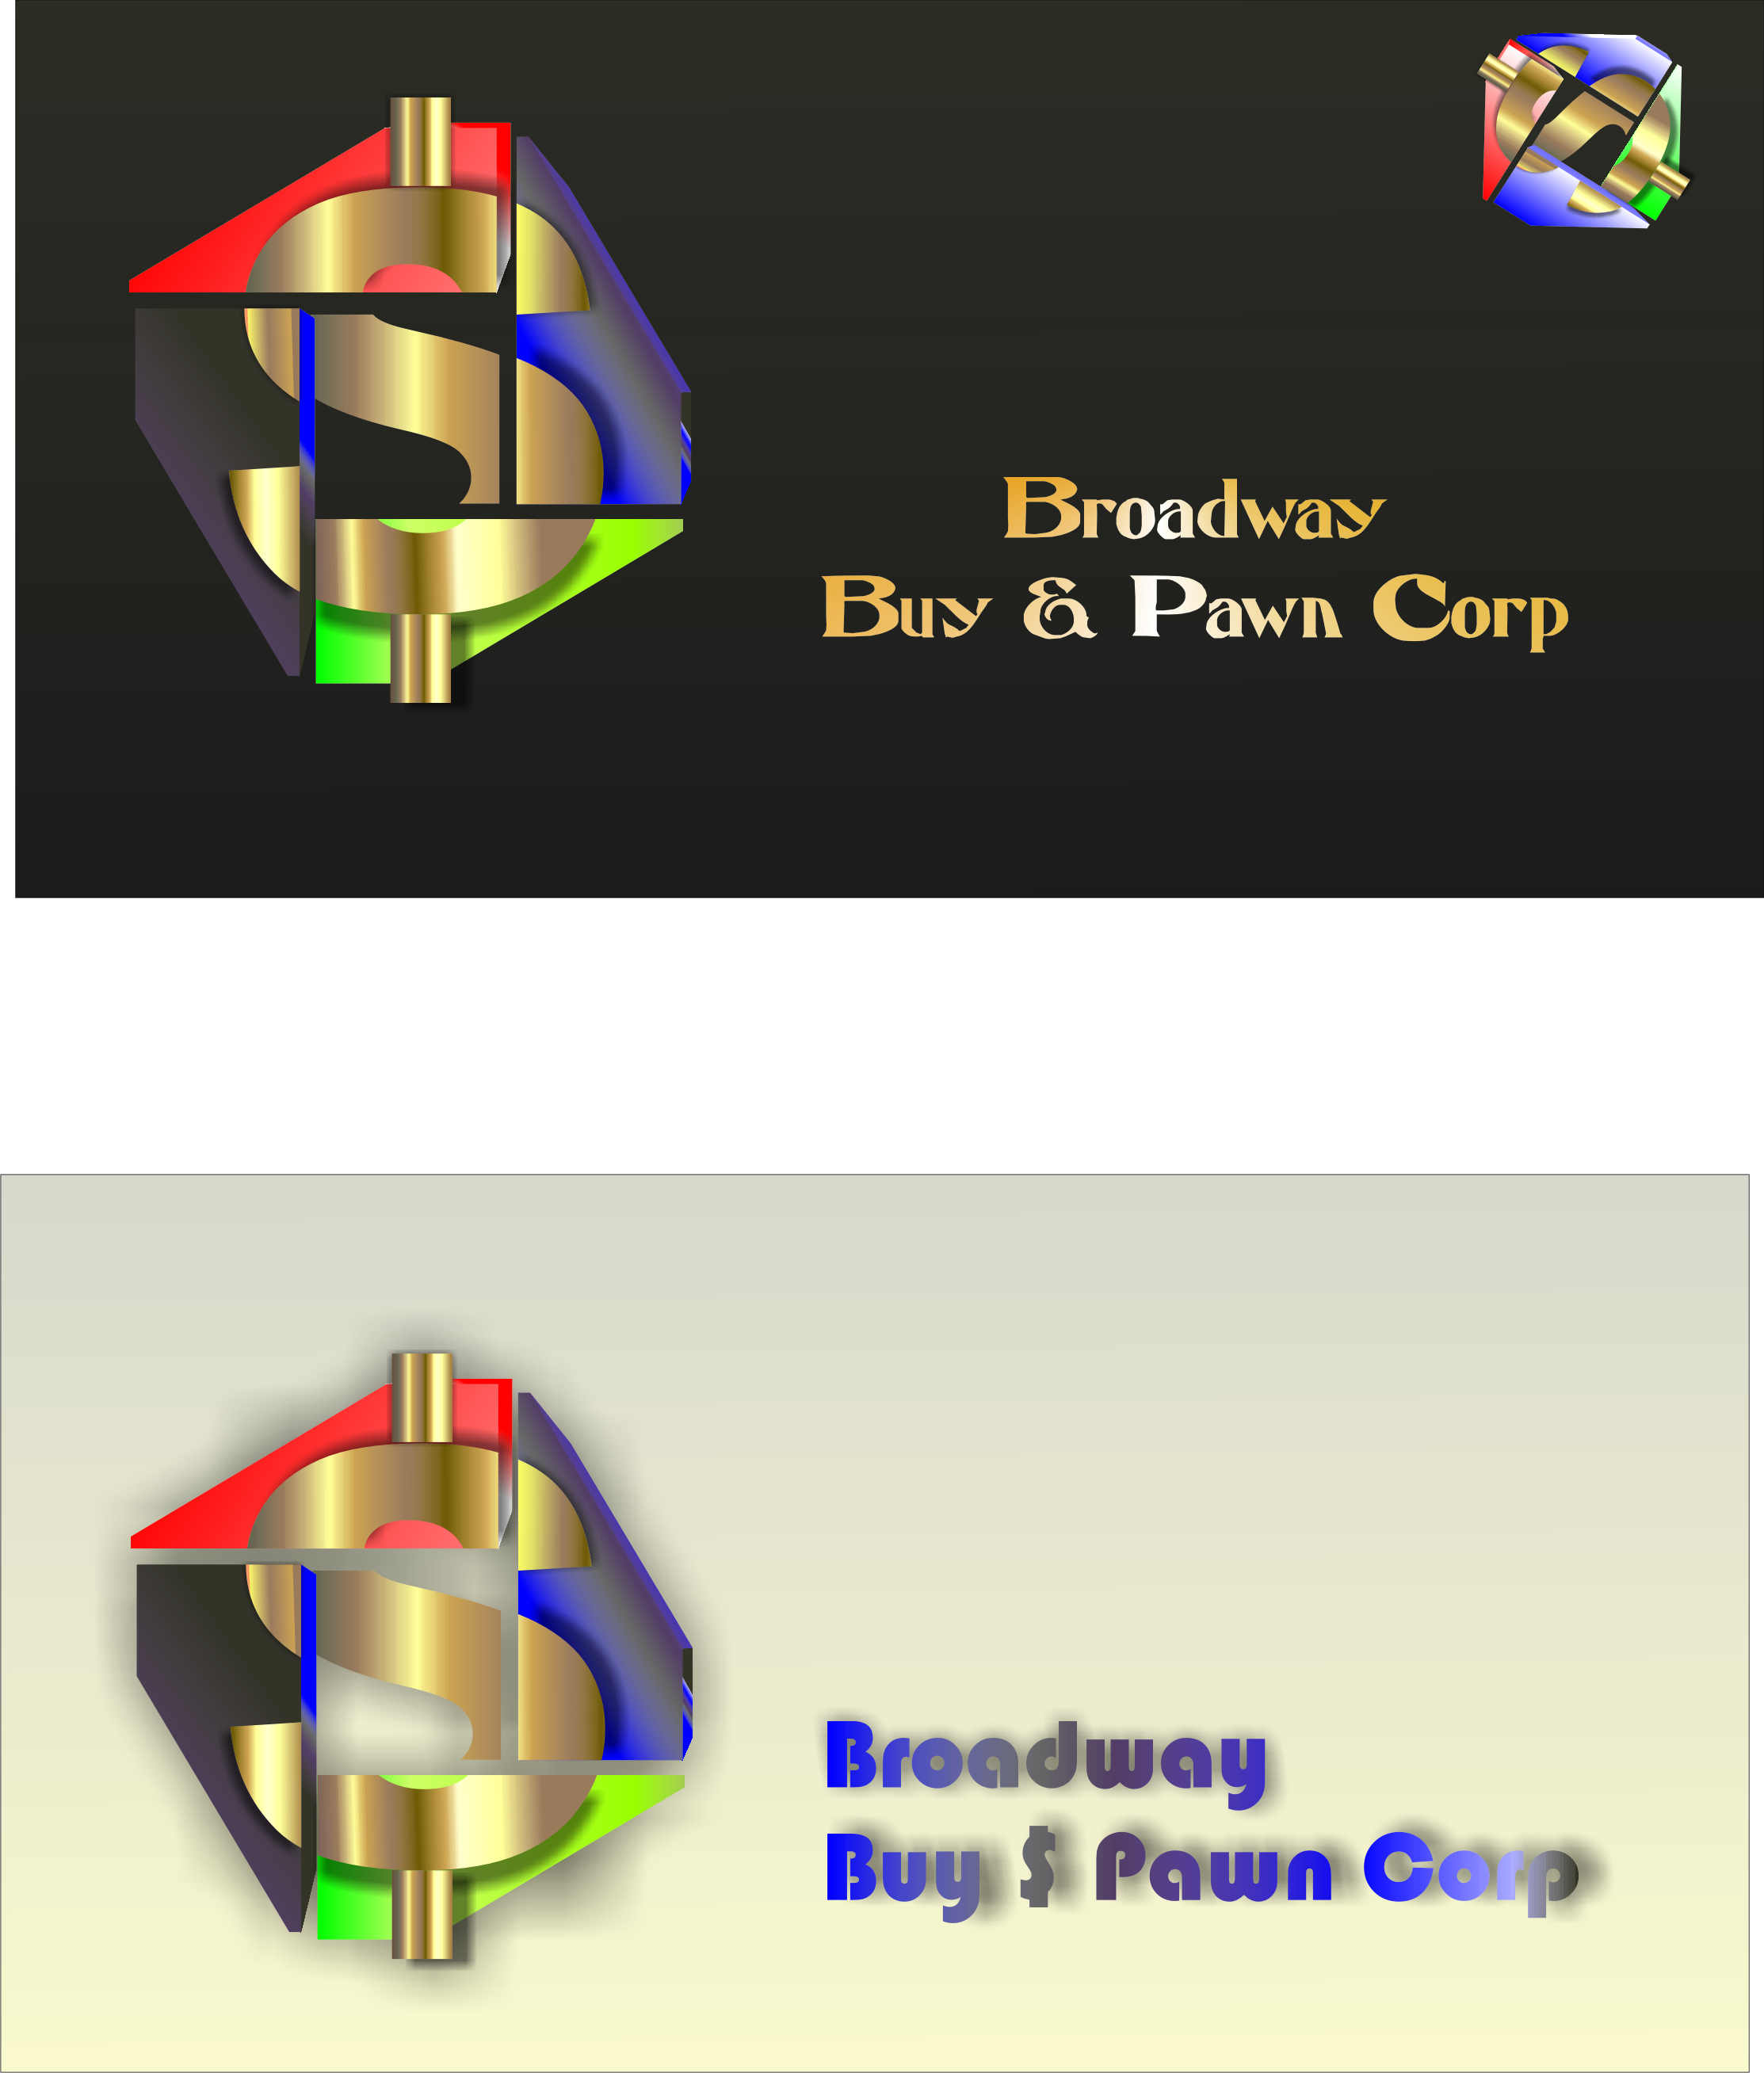 Logo Design by dimitrovart - Entry No. 9 in the Logo Design Contest Unique Logo Design Wanted for Broadway Buy & Pawn corp or BNP for short.